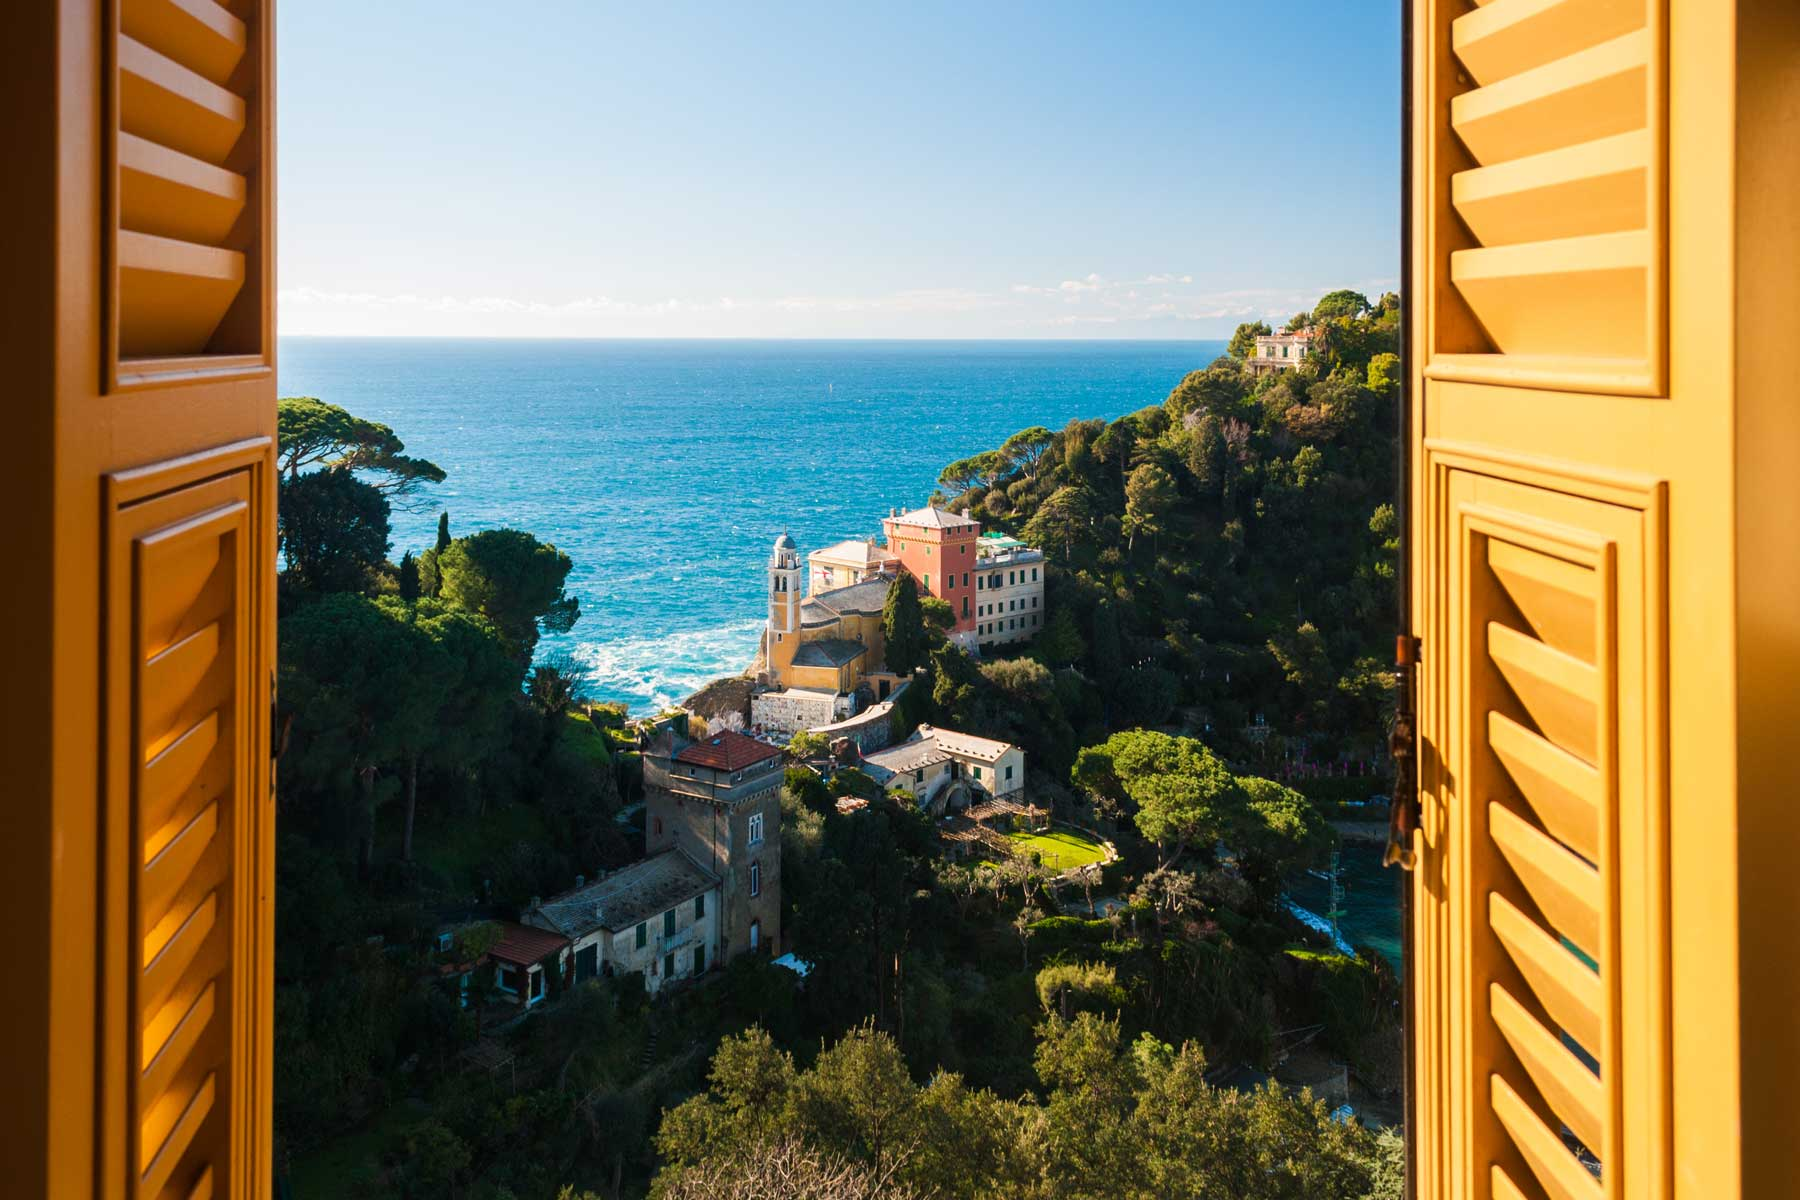 View from a window in Portofino, Italy of the sea